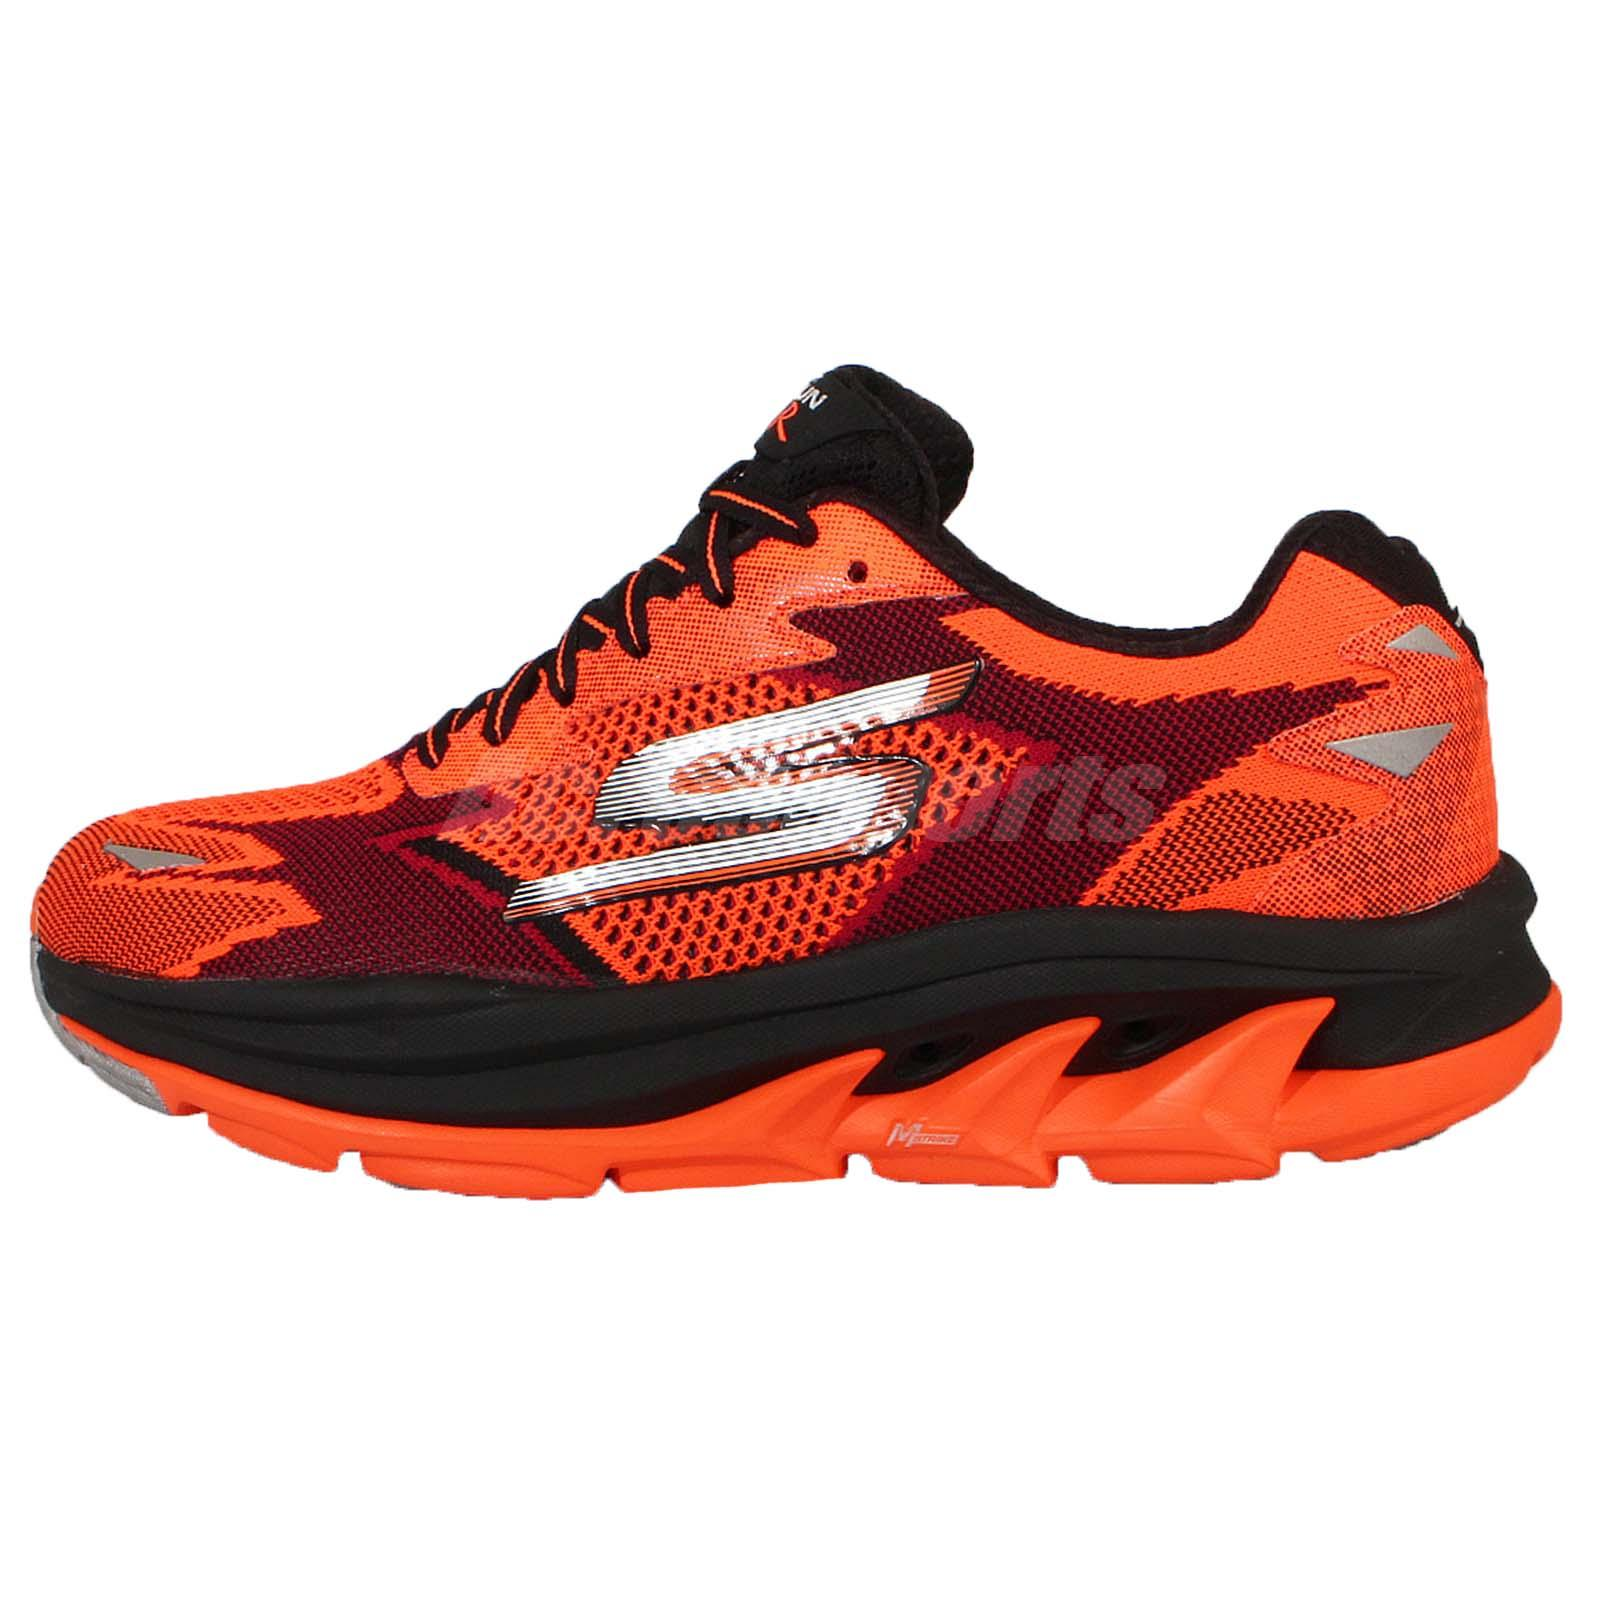 skechers go run ultra r road orange black silver mens. Black Bedroom Furniture Sets. Home Design Ideas